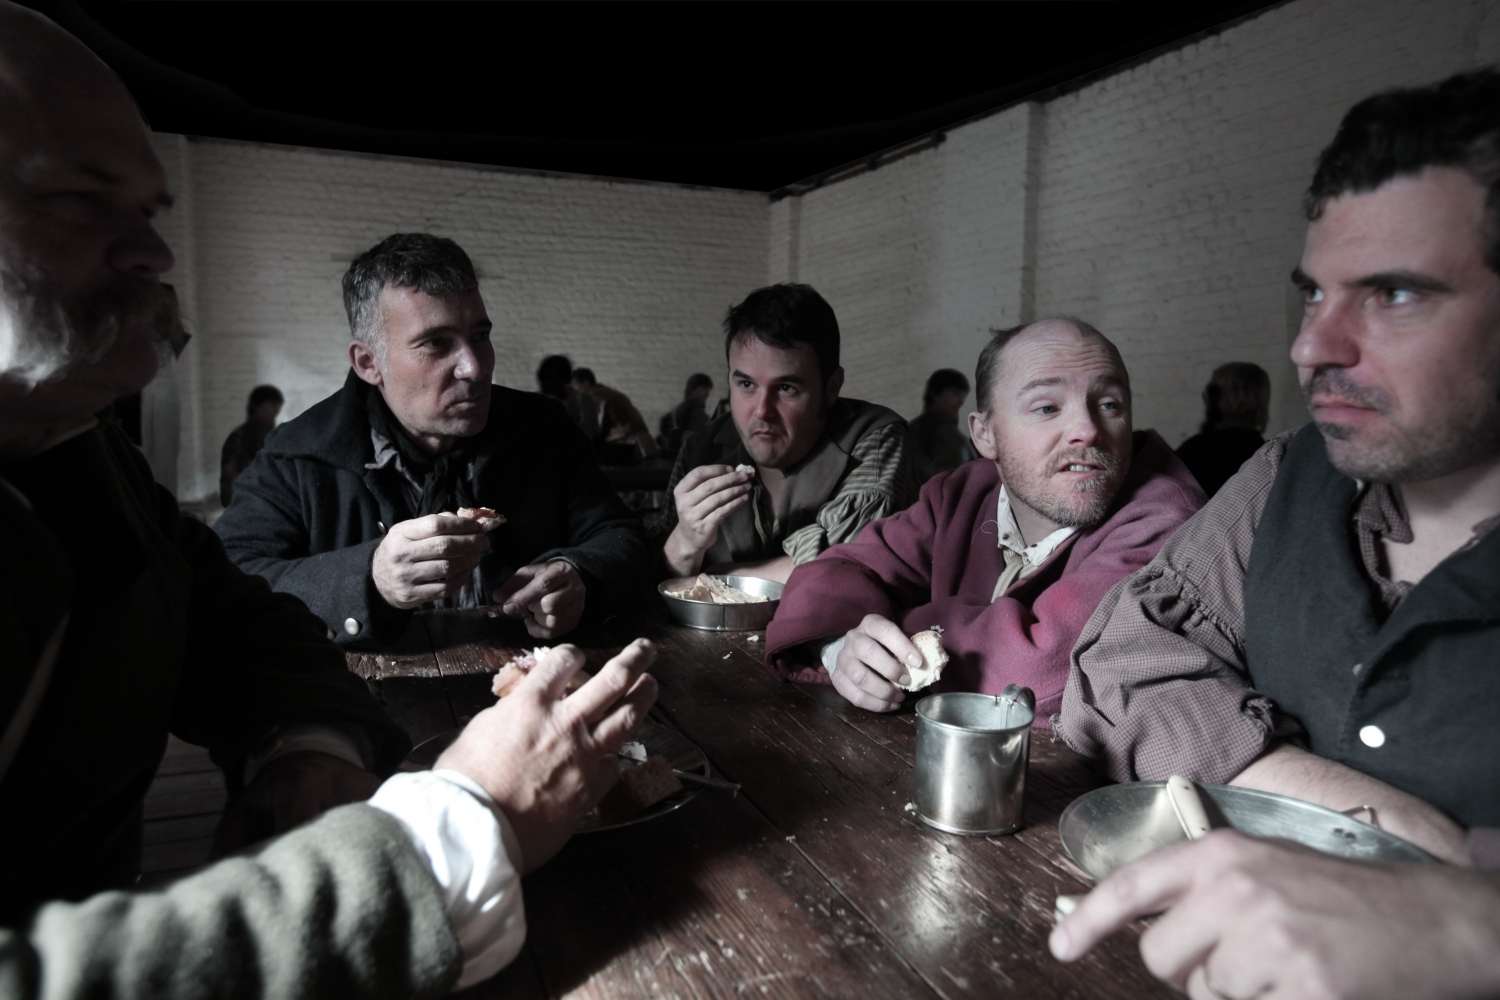 Moody image of men sitting eating food from tin plates.